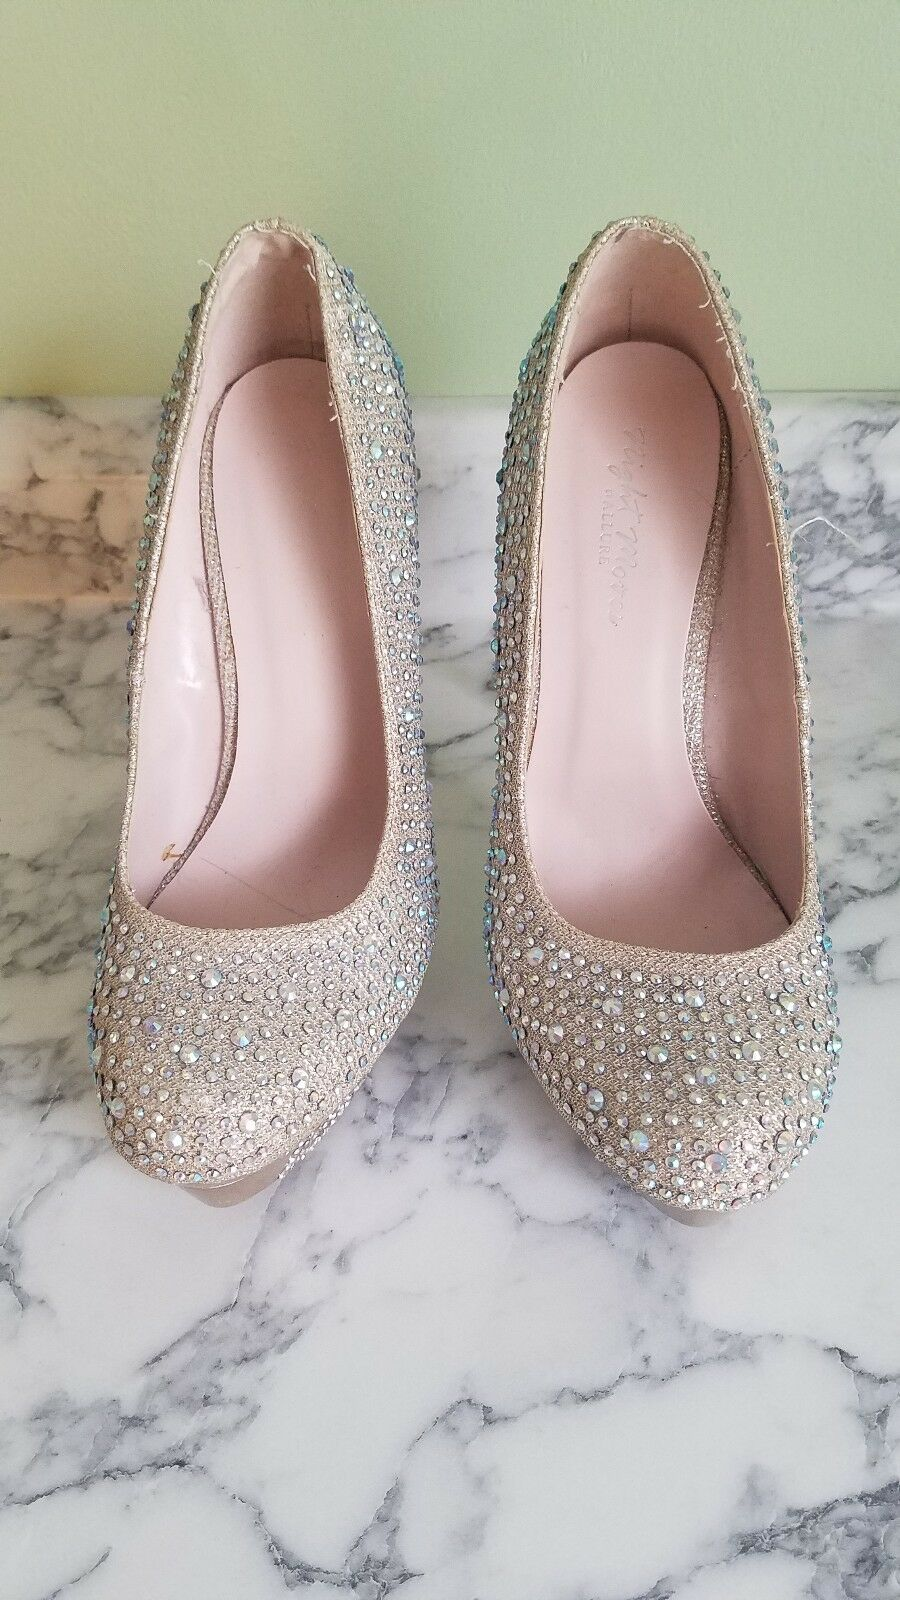 Night Night Night moves by allure Größe 8 Rosa Gold prom schuhe with Iridescent gems 5b3201